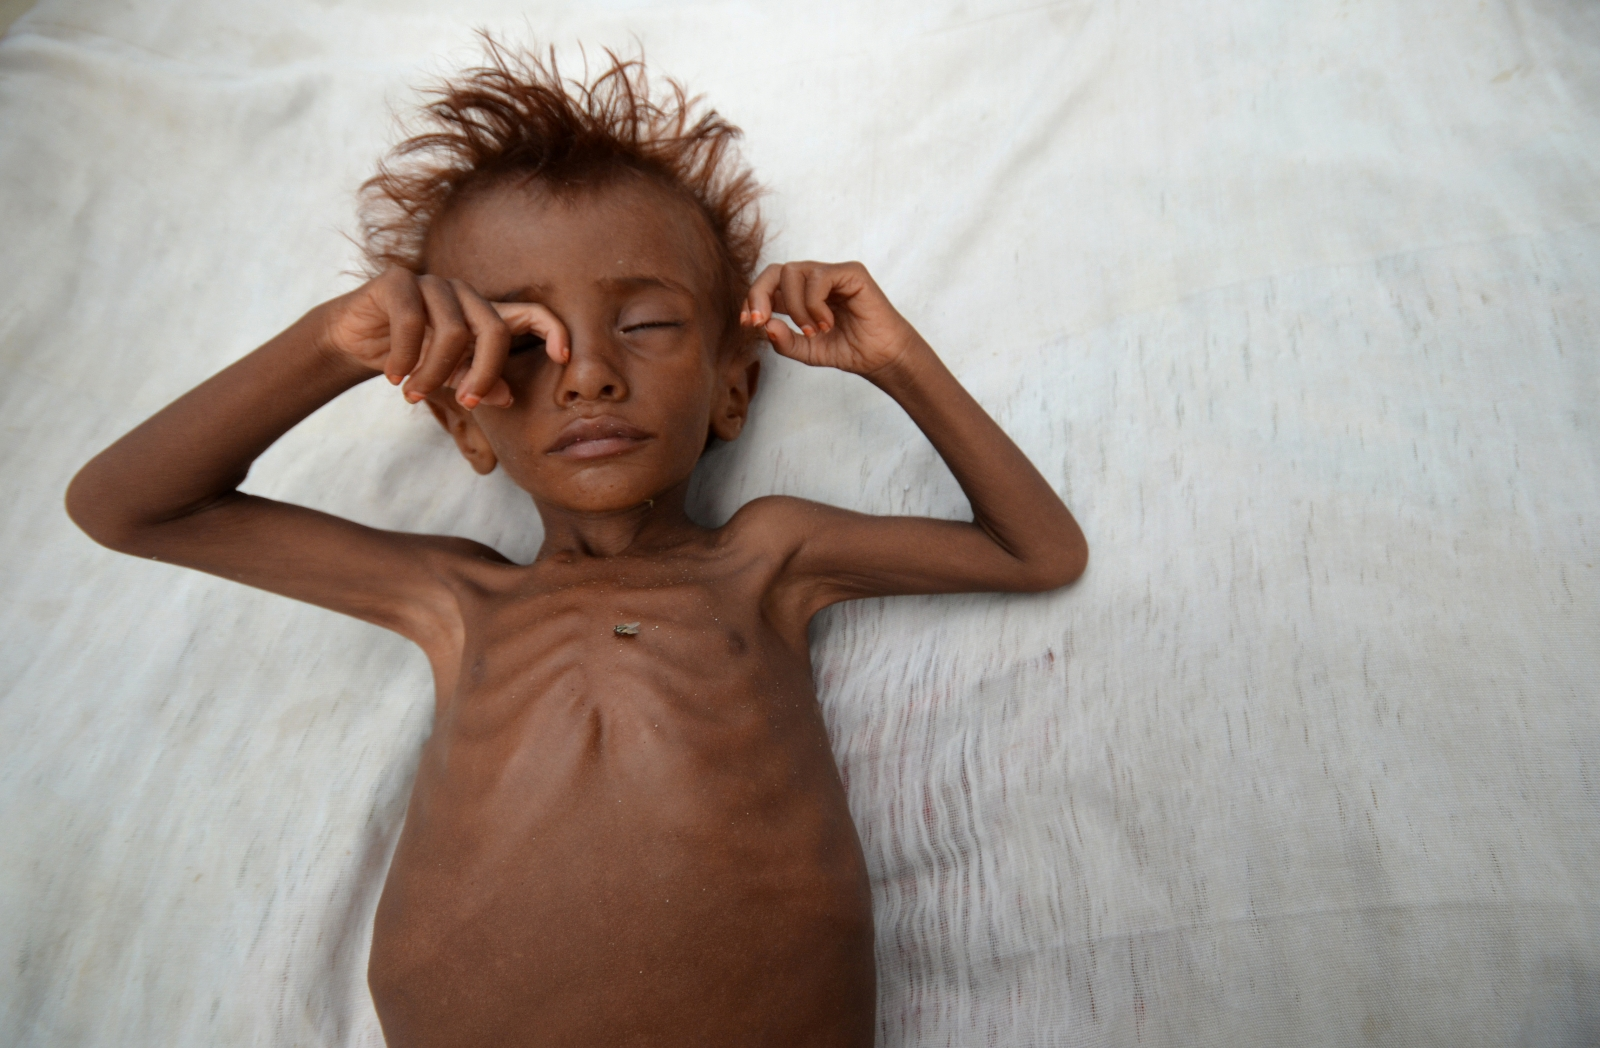 United Nations warns of starvation threat in Yemen